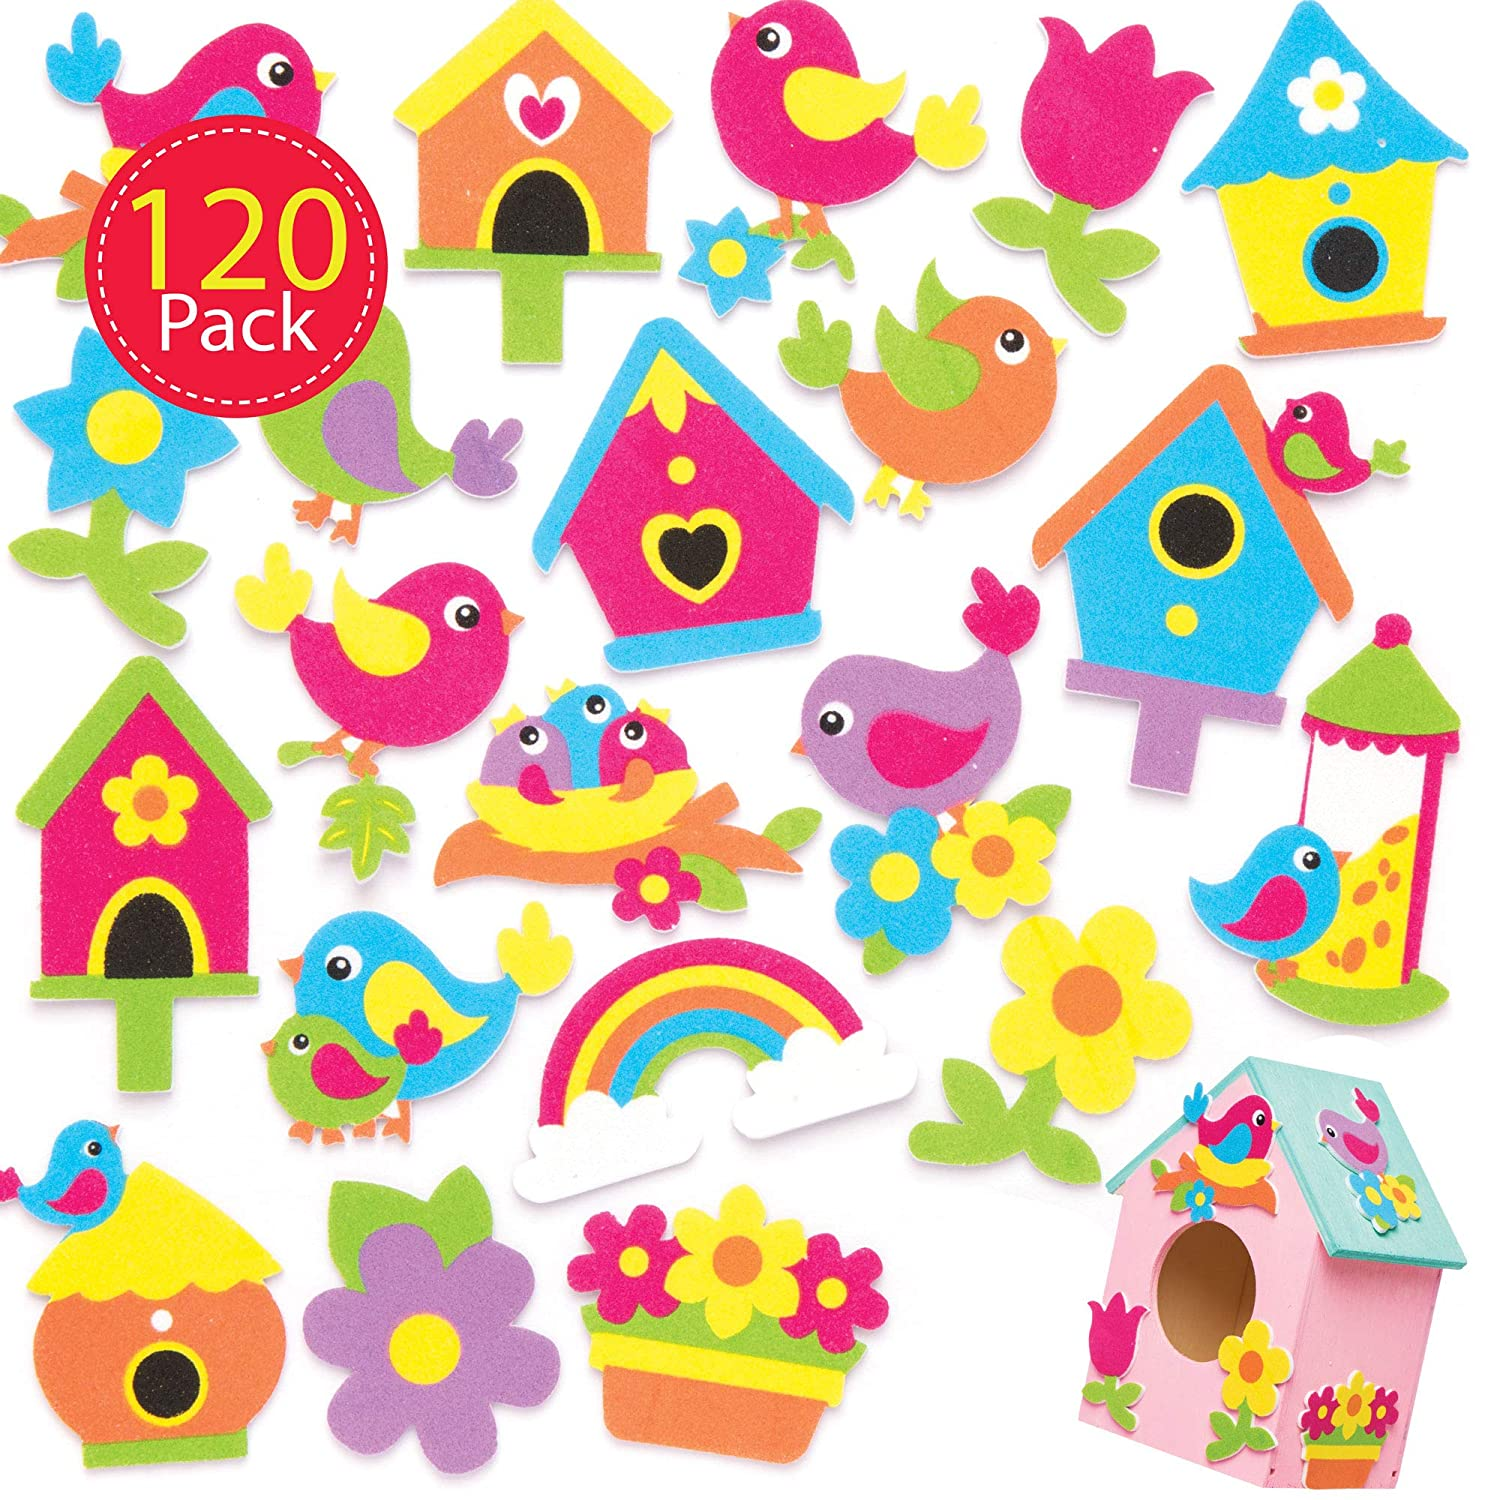 Pack of 120 Self Adhesives Perfect for Children to Decorate Collages and Crafts Ideal for Schools Baker Ross AW306 Bird Foam Stickers Home Party Crafting Craft Groups